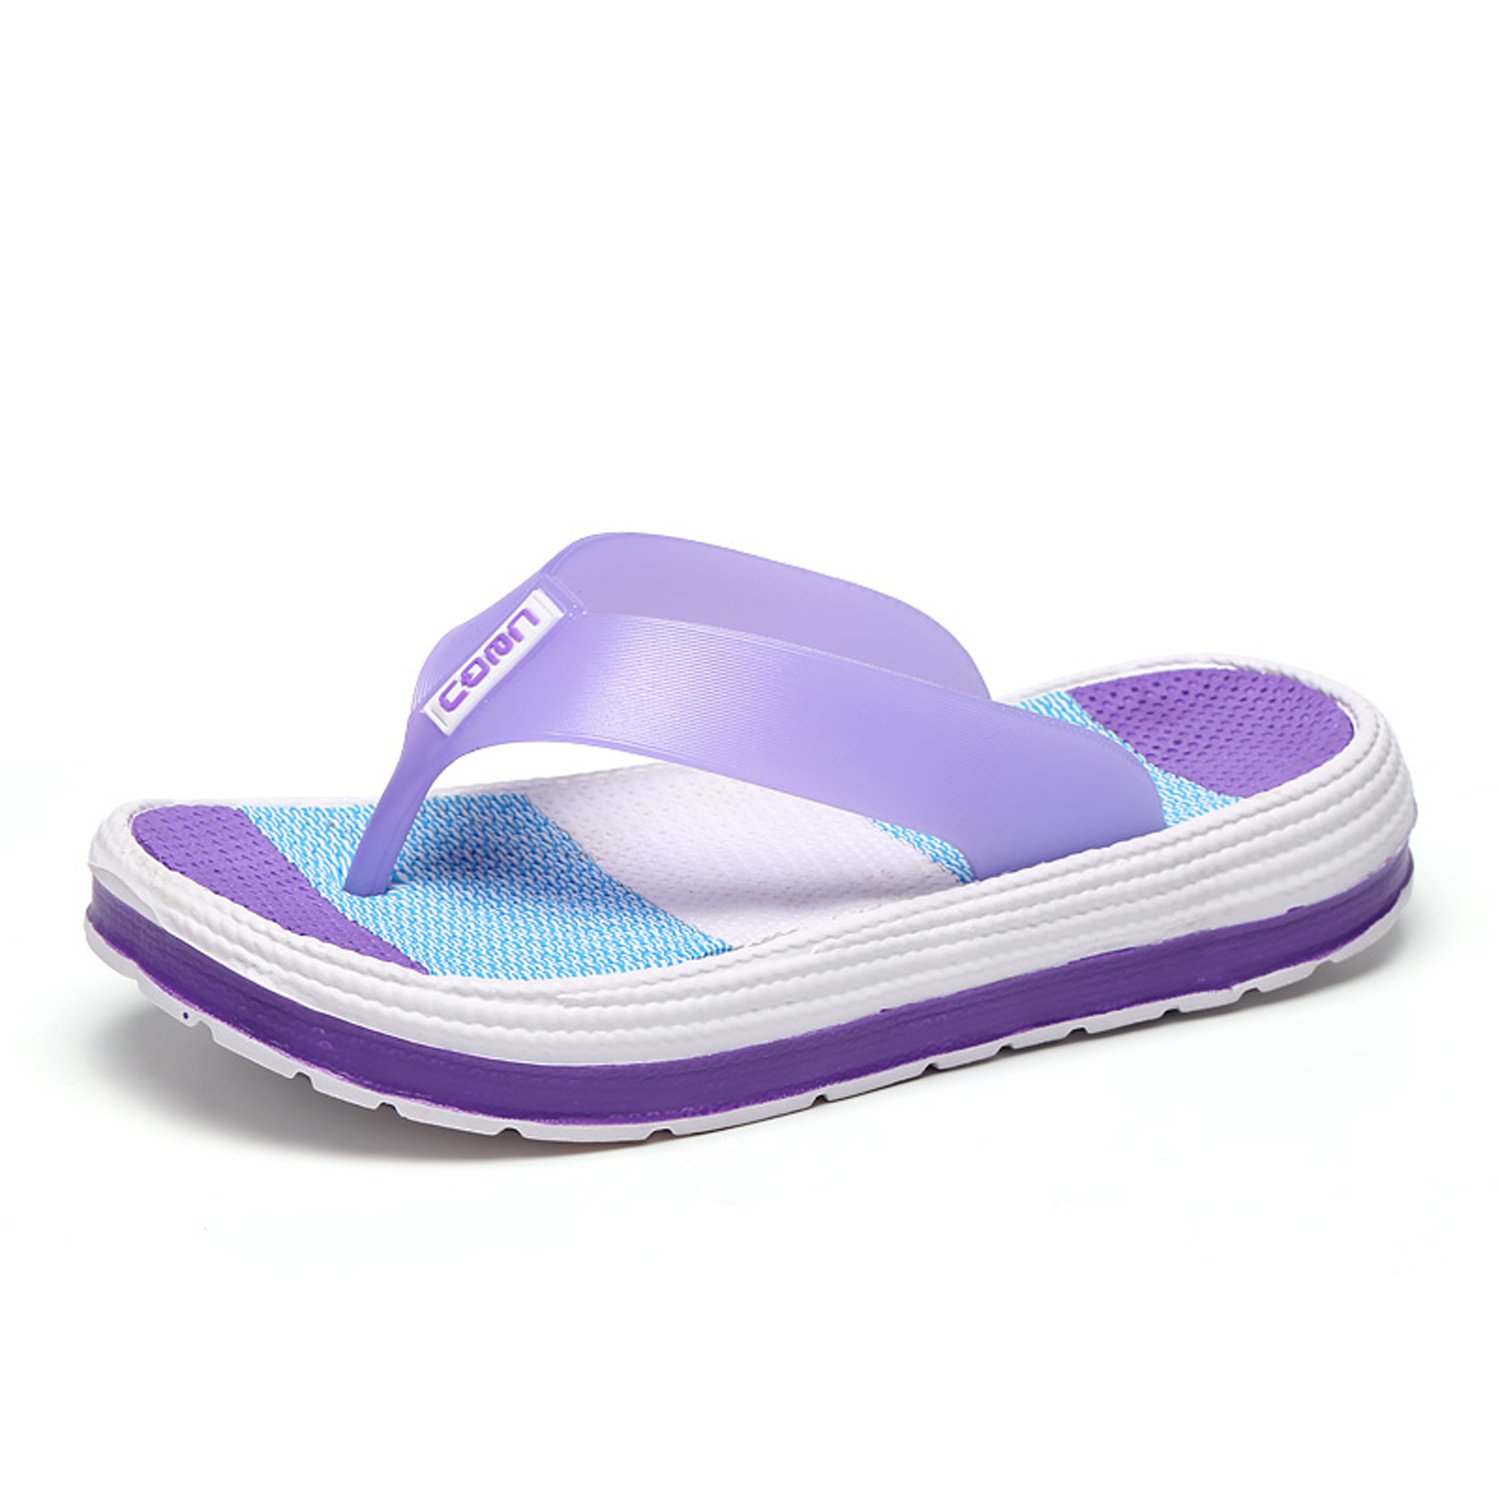 Sintiz Women's Flip Flops Soft Padded Thong Sandals Comfort Walking Slippers Casual Beach Wear Non-Slip Purple 9 (B) M US